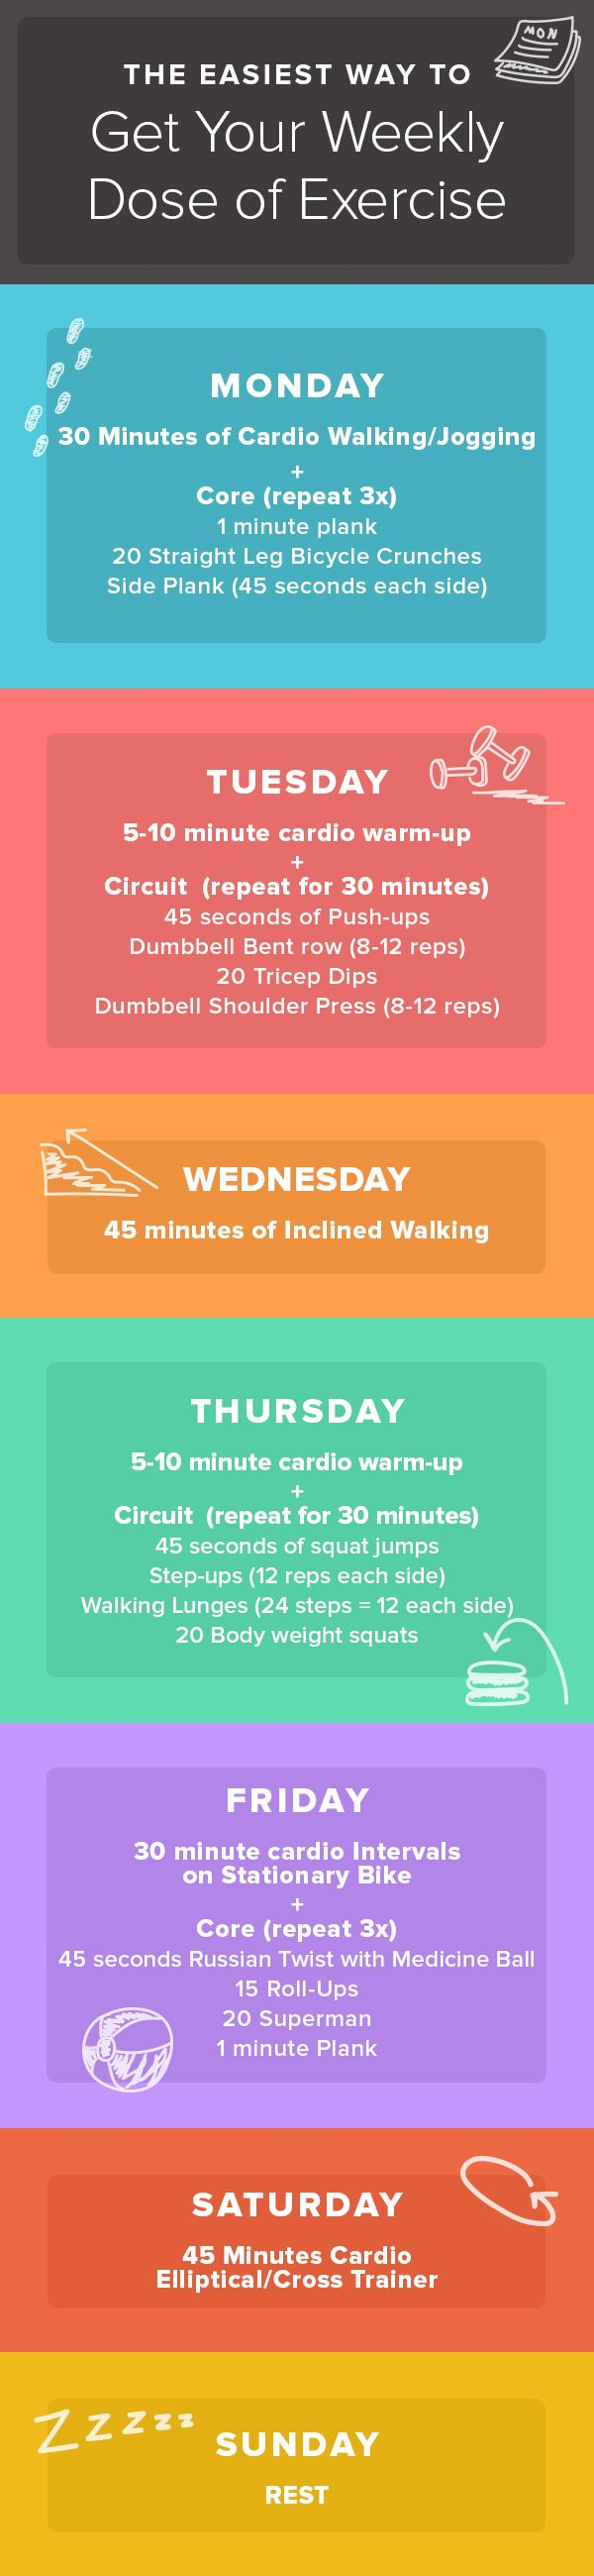 Follow this guide for getting in the recommended 2.5 hours exercises to maintain a healthy heart. This cardio strengthening  routine is easy to follow. No gym is required.